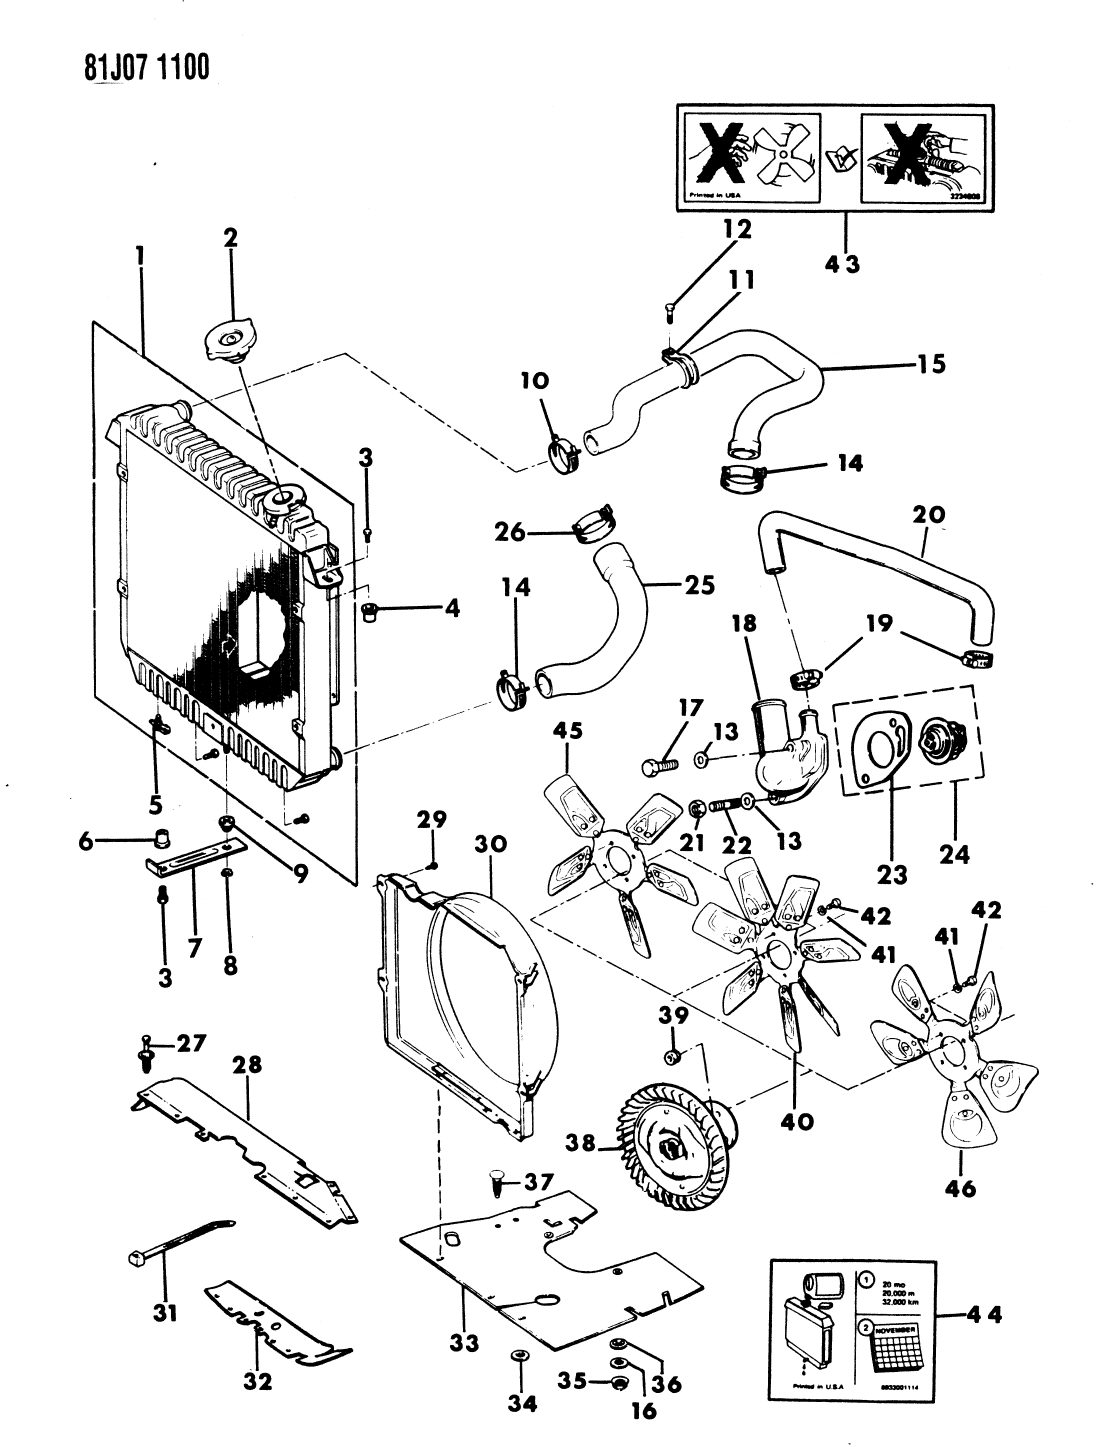 J3241858 Genuine Mopar Motor Fan 1985 Jeep Grand Wagoneer Engine Diagram Cherokee Radiator Related Parts